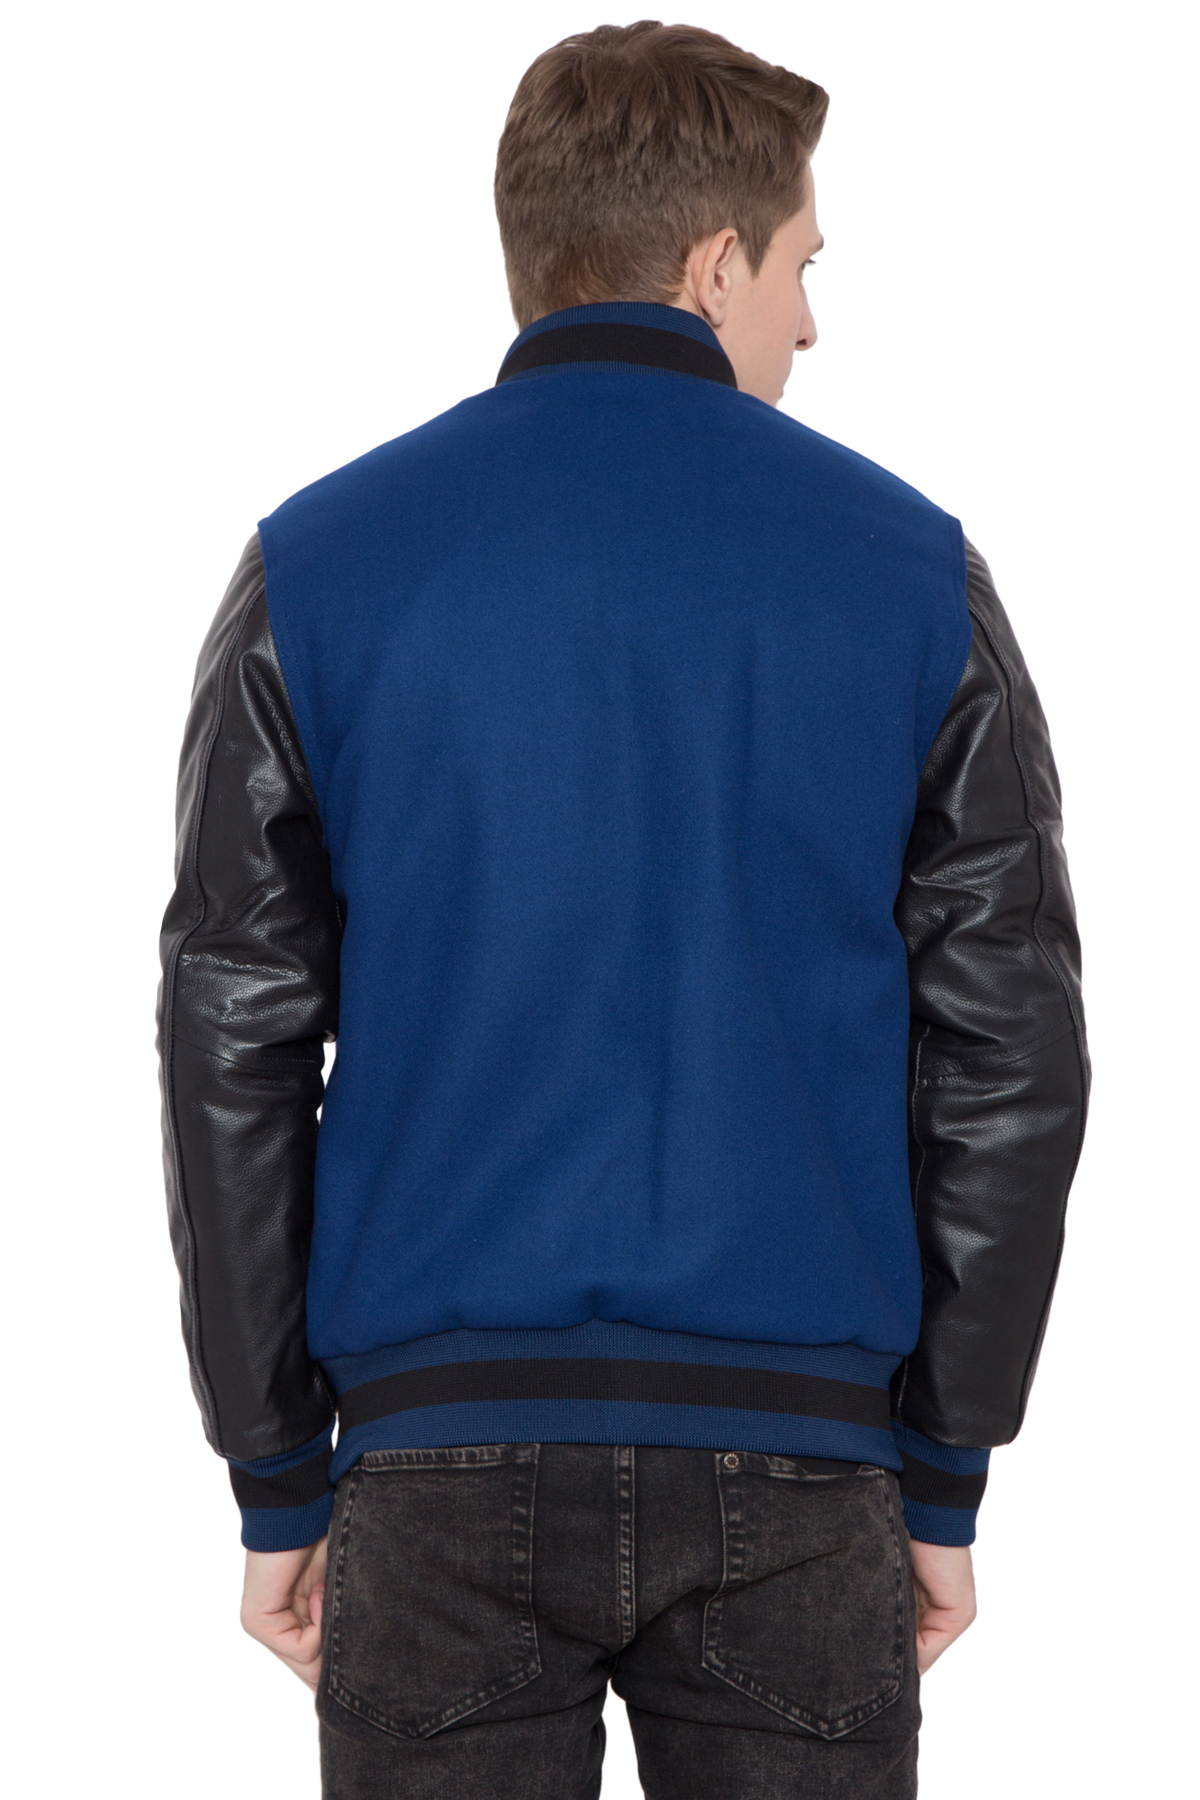 High Royal Wool Leather Varsity Jacket